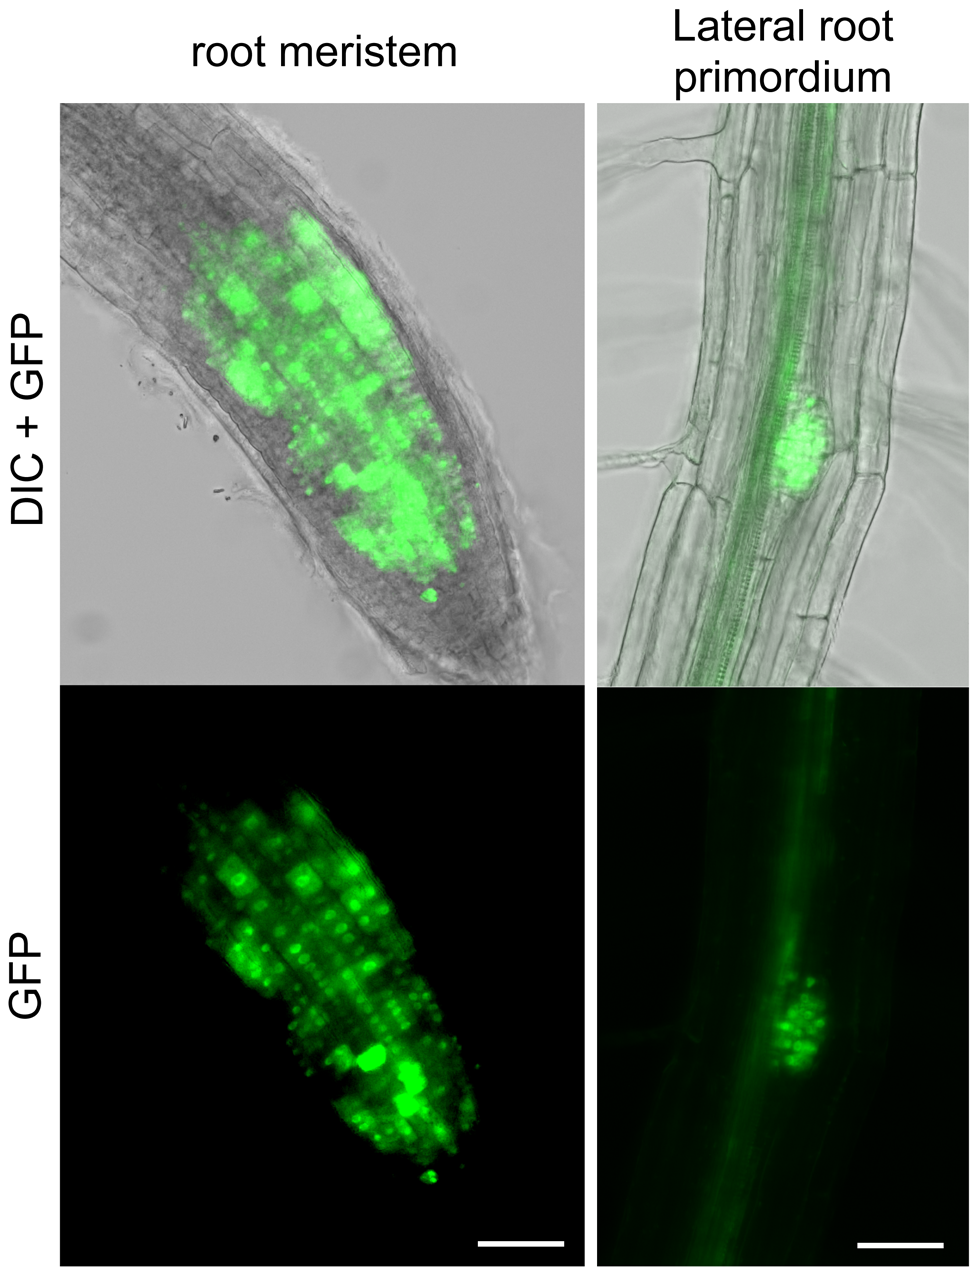 RAD51-GFP is expressed in nuclei of meristematic cells in primary and lateral roots.